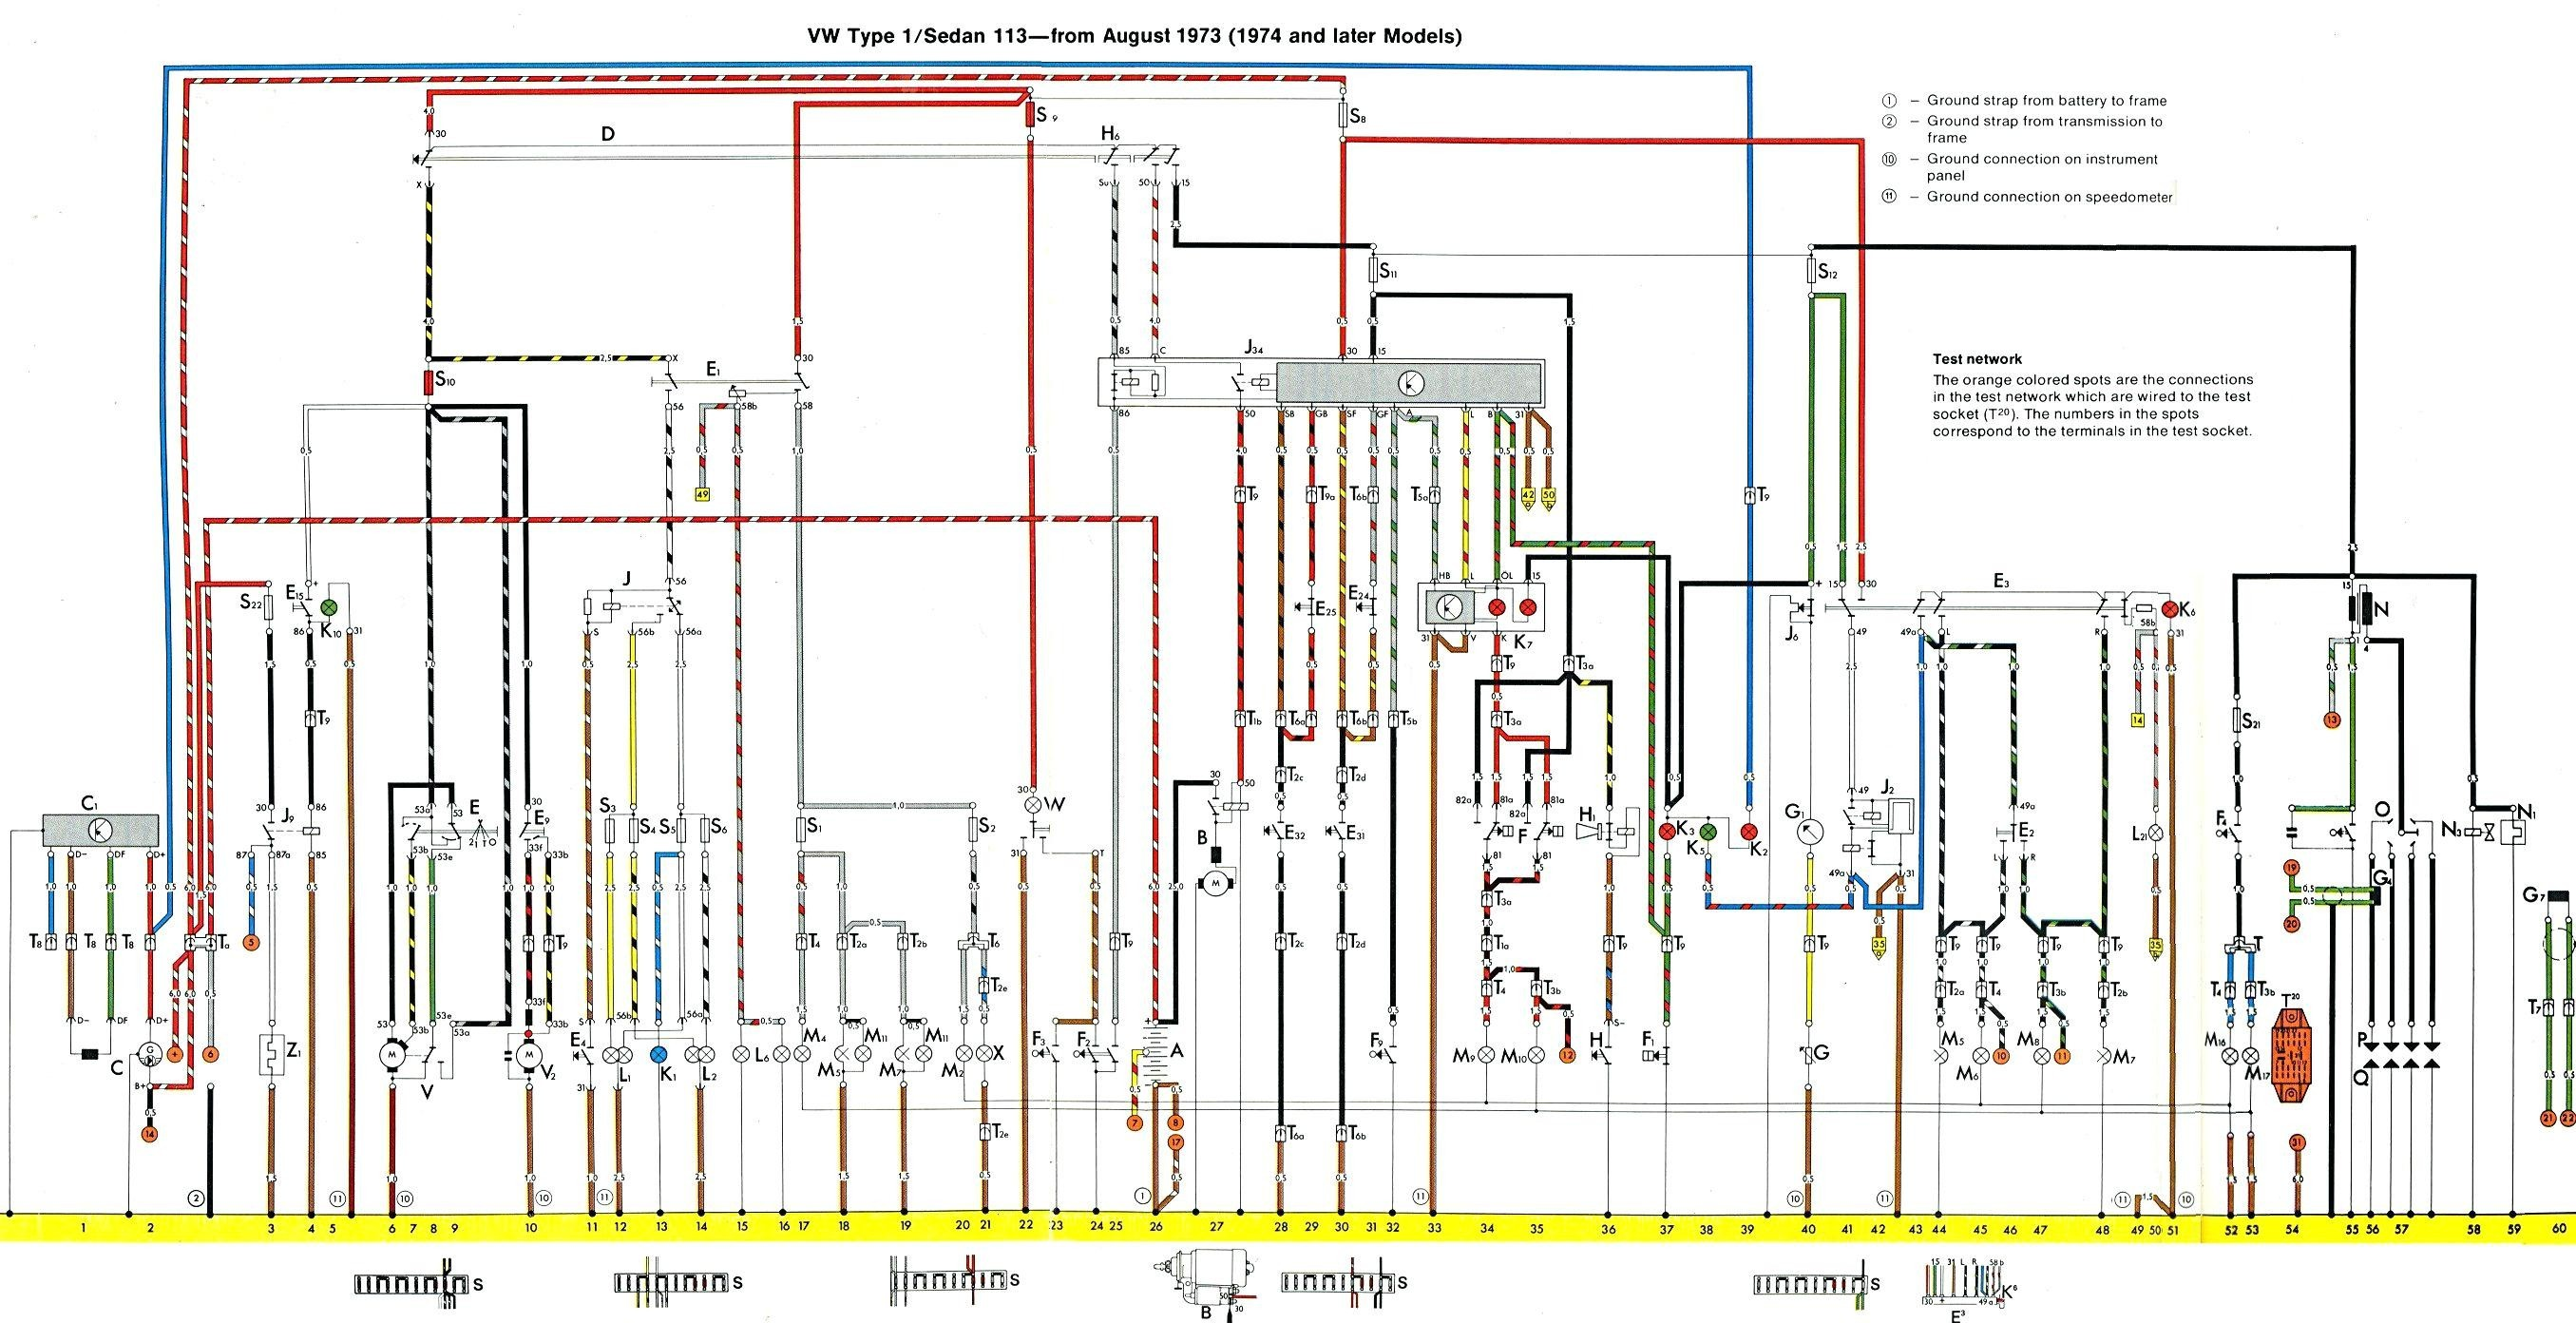 [SCHEMATICS_4CA]  591 Fuse Box On 2000 Vw Beetle - Wiring Diagram Srconds | Wiring Library | 2000 Vw Beetle Wiring Diagram |  | Wiring Library